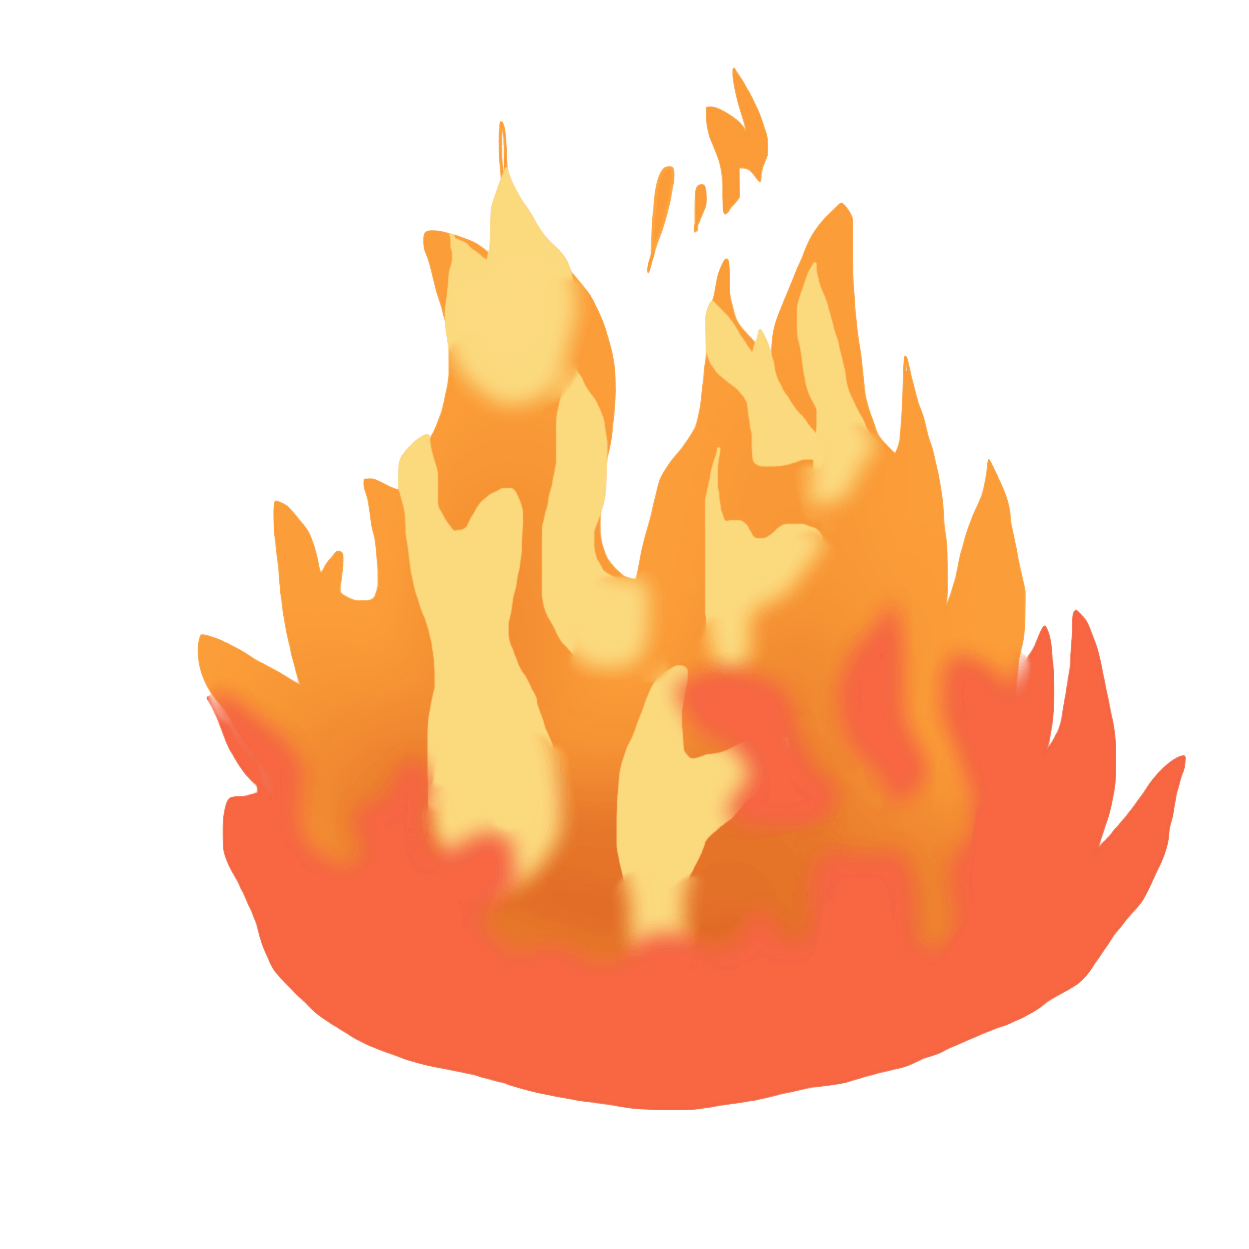 Fire clipart clip art. Flames background cliparts zone